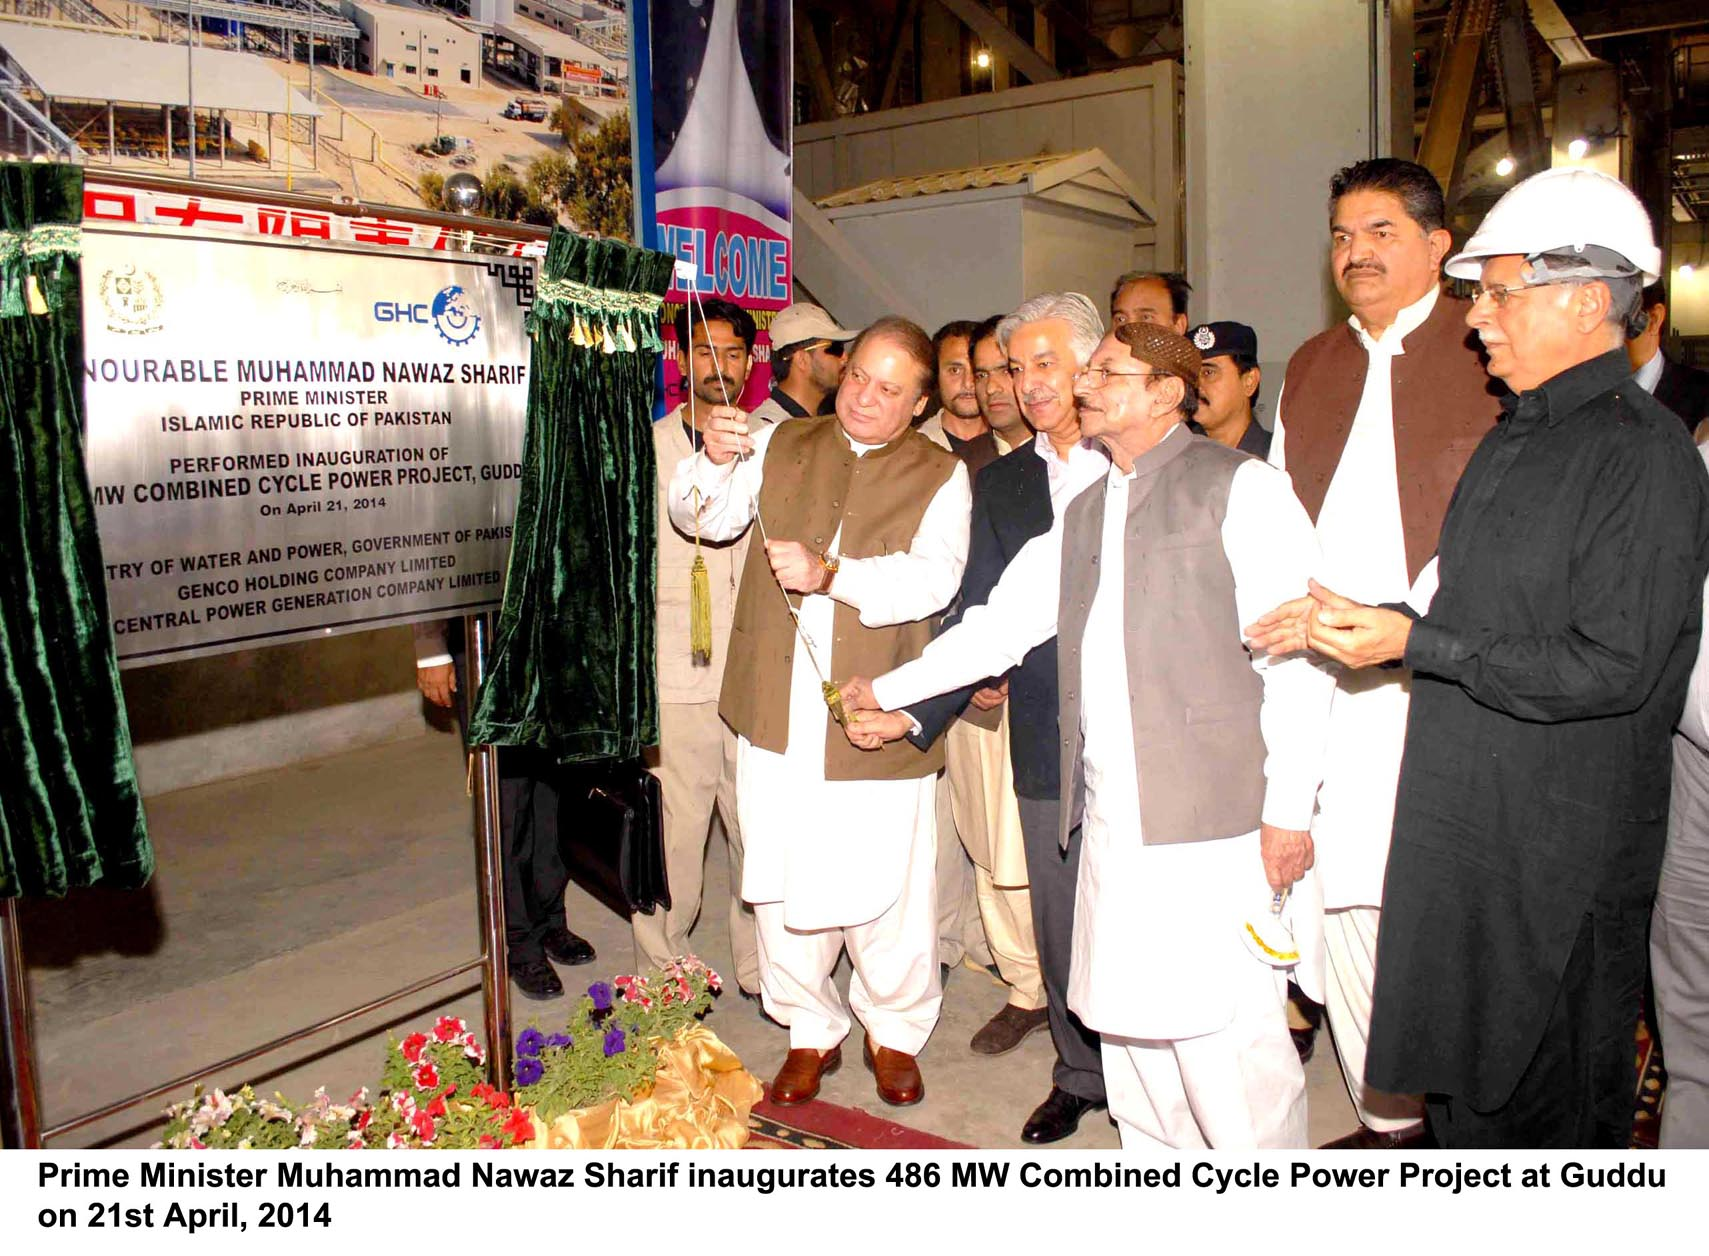 prime minister nawaz sharif along with minister for water and power khawaja asif and the sindh chief minister qaim ali shah unveil the plaque for the 486mw combined cycle power plant at guddu photo pid